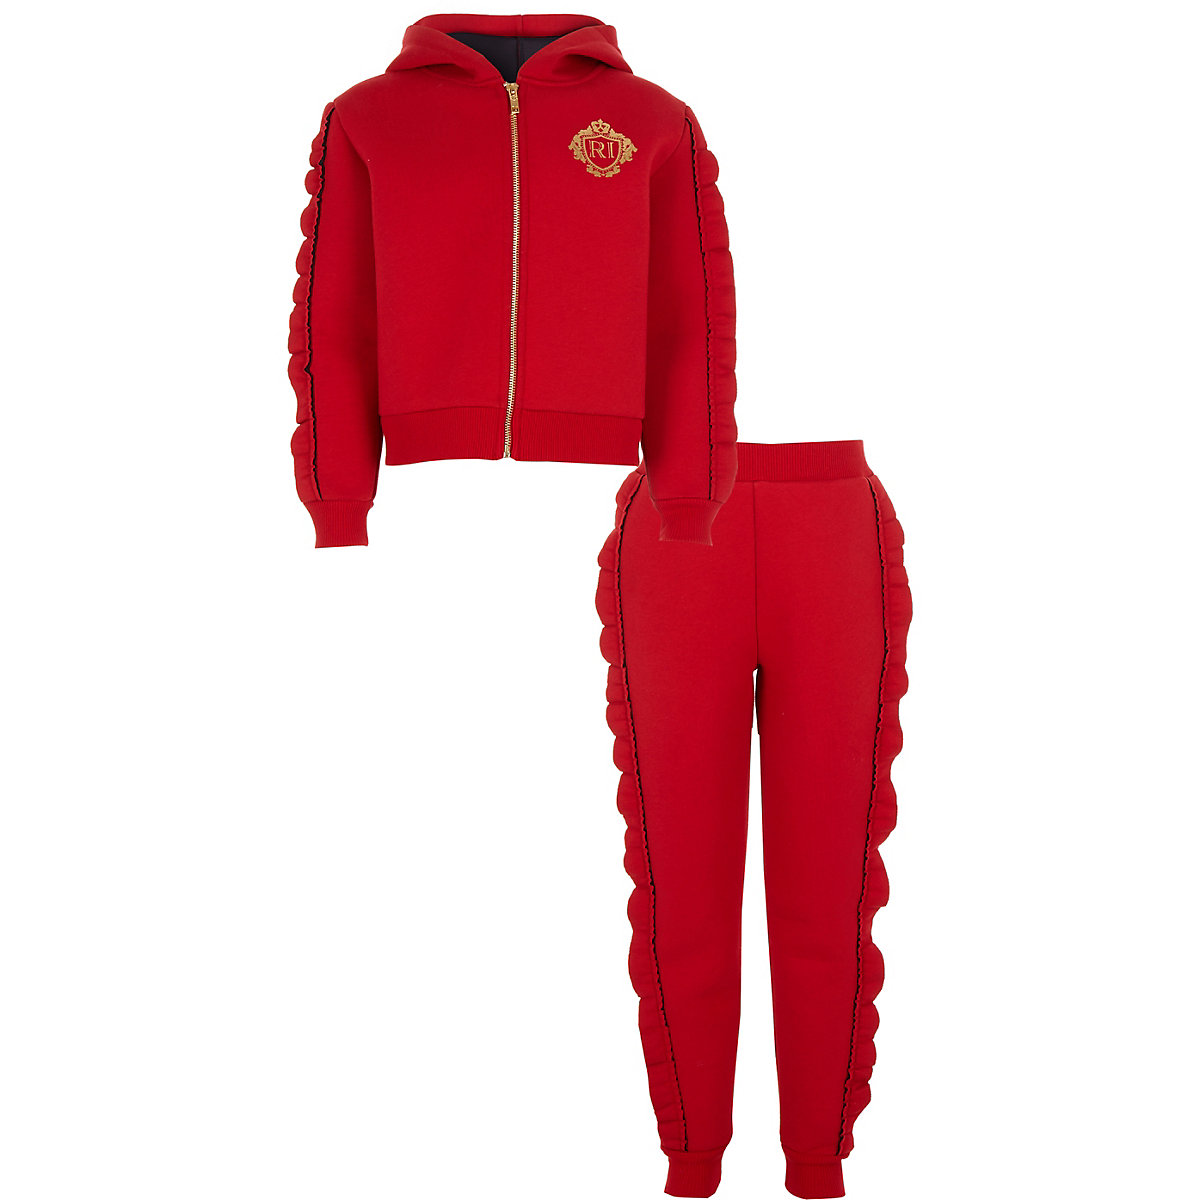 Girls red rhinestone frill hoodie outfit